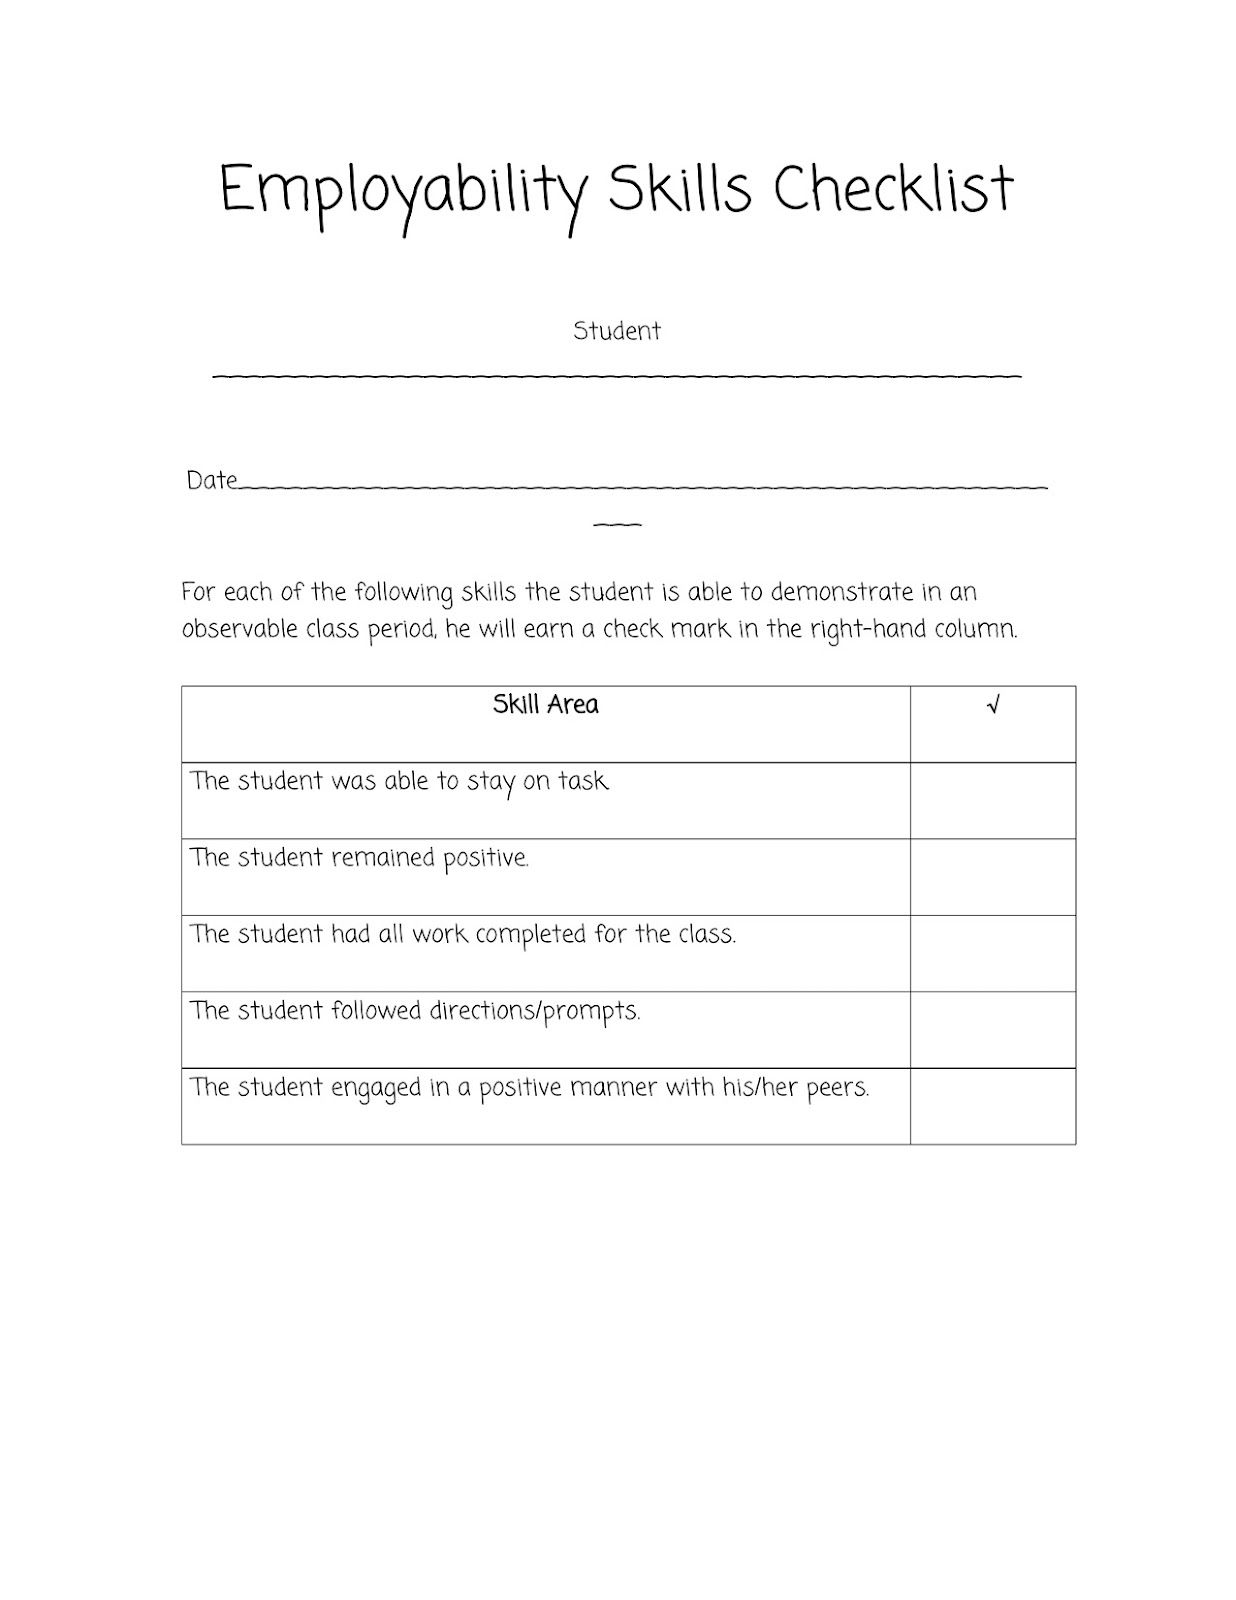 sped head employability skills checklist employment